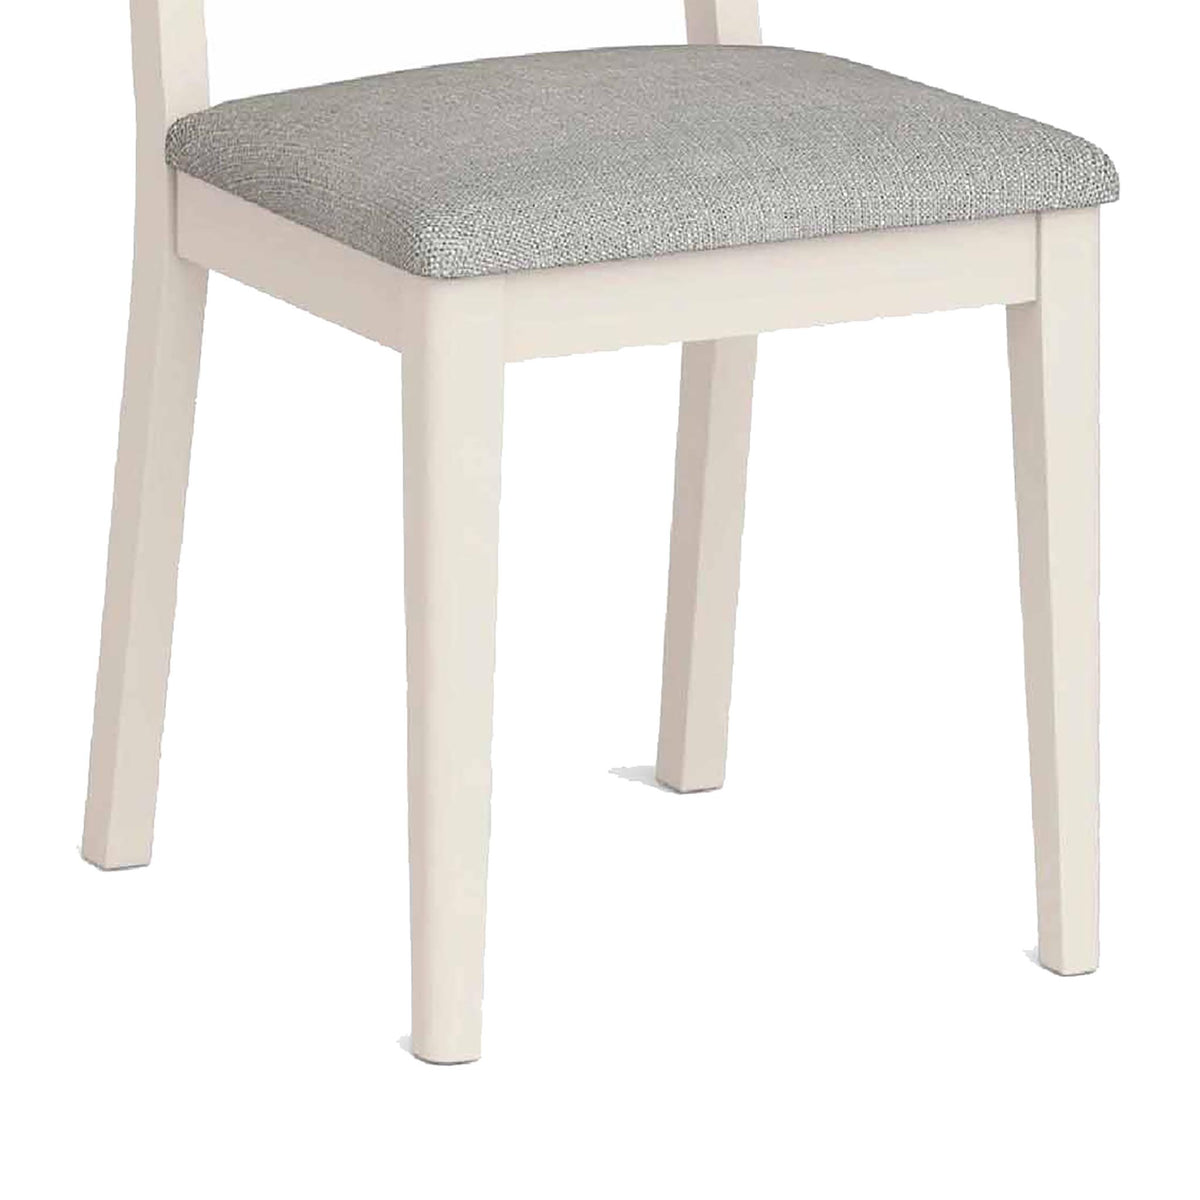 Windsor Cream Dining Chair - Close Up of Chair Legs and Padded Seat